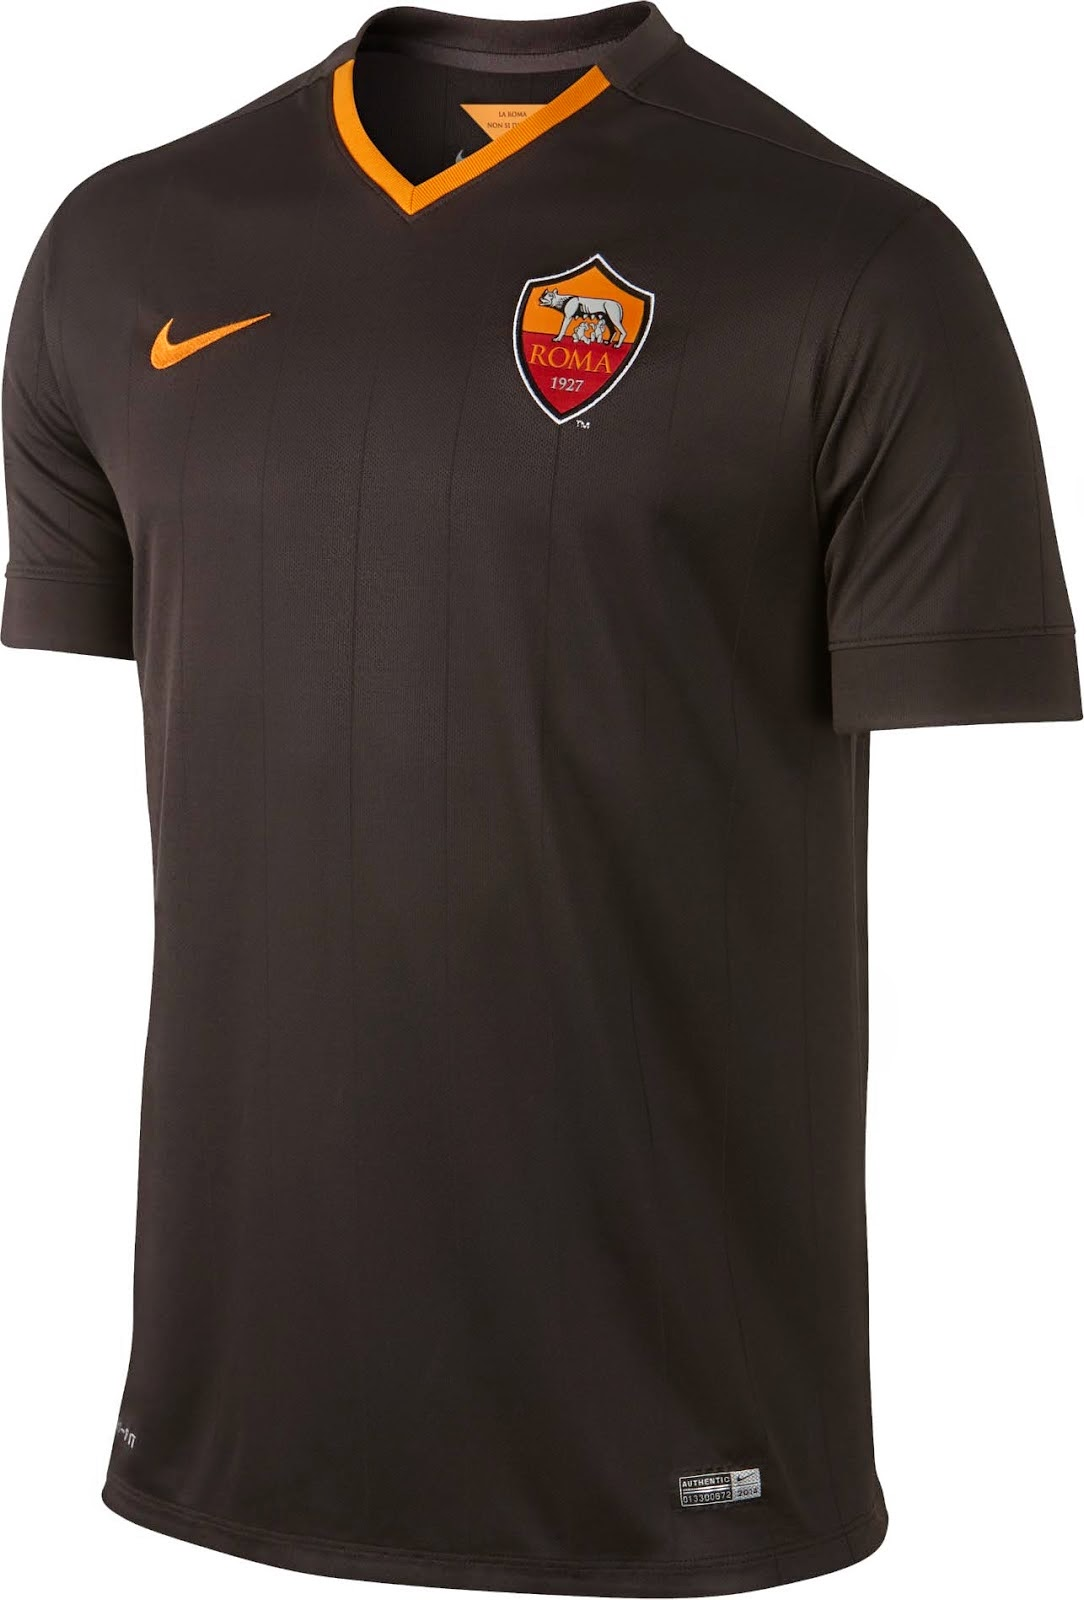 Nike AS Roma 14-15 Third Kit